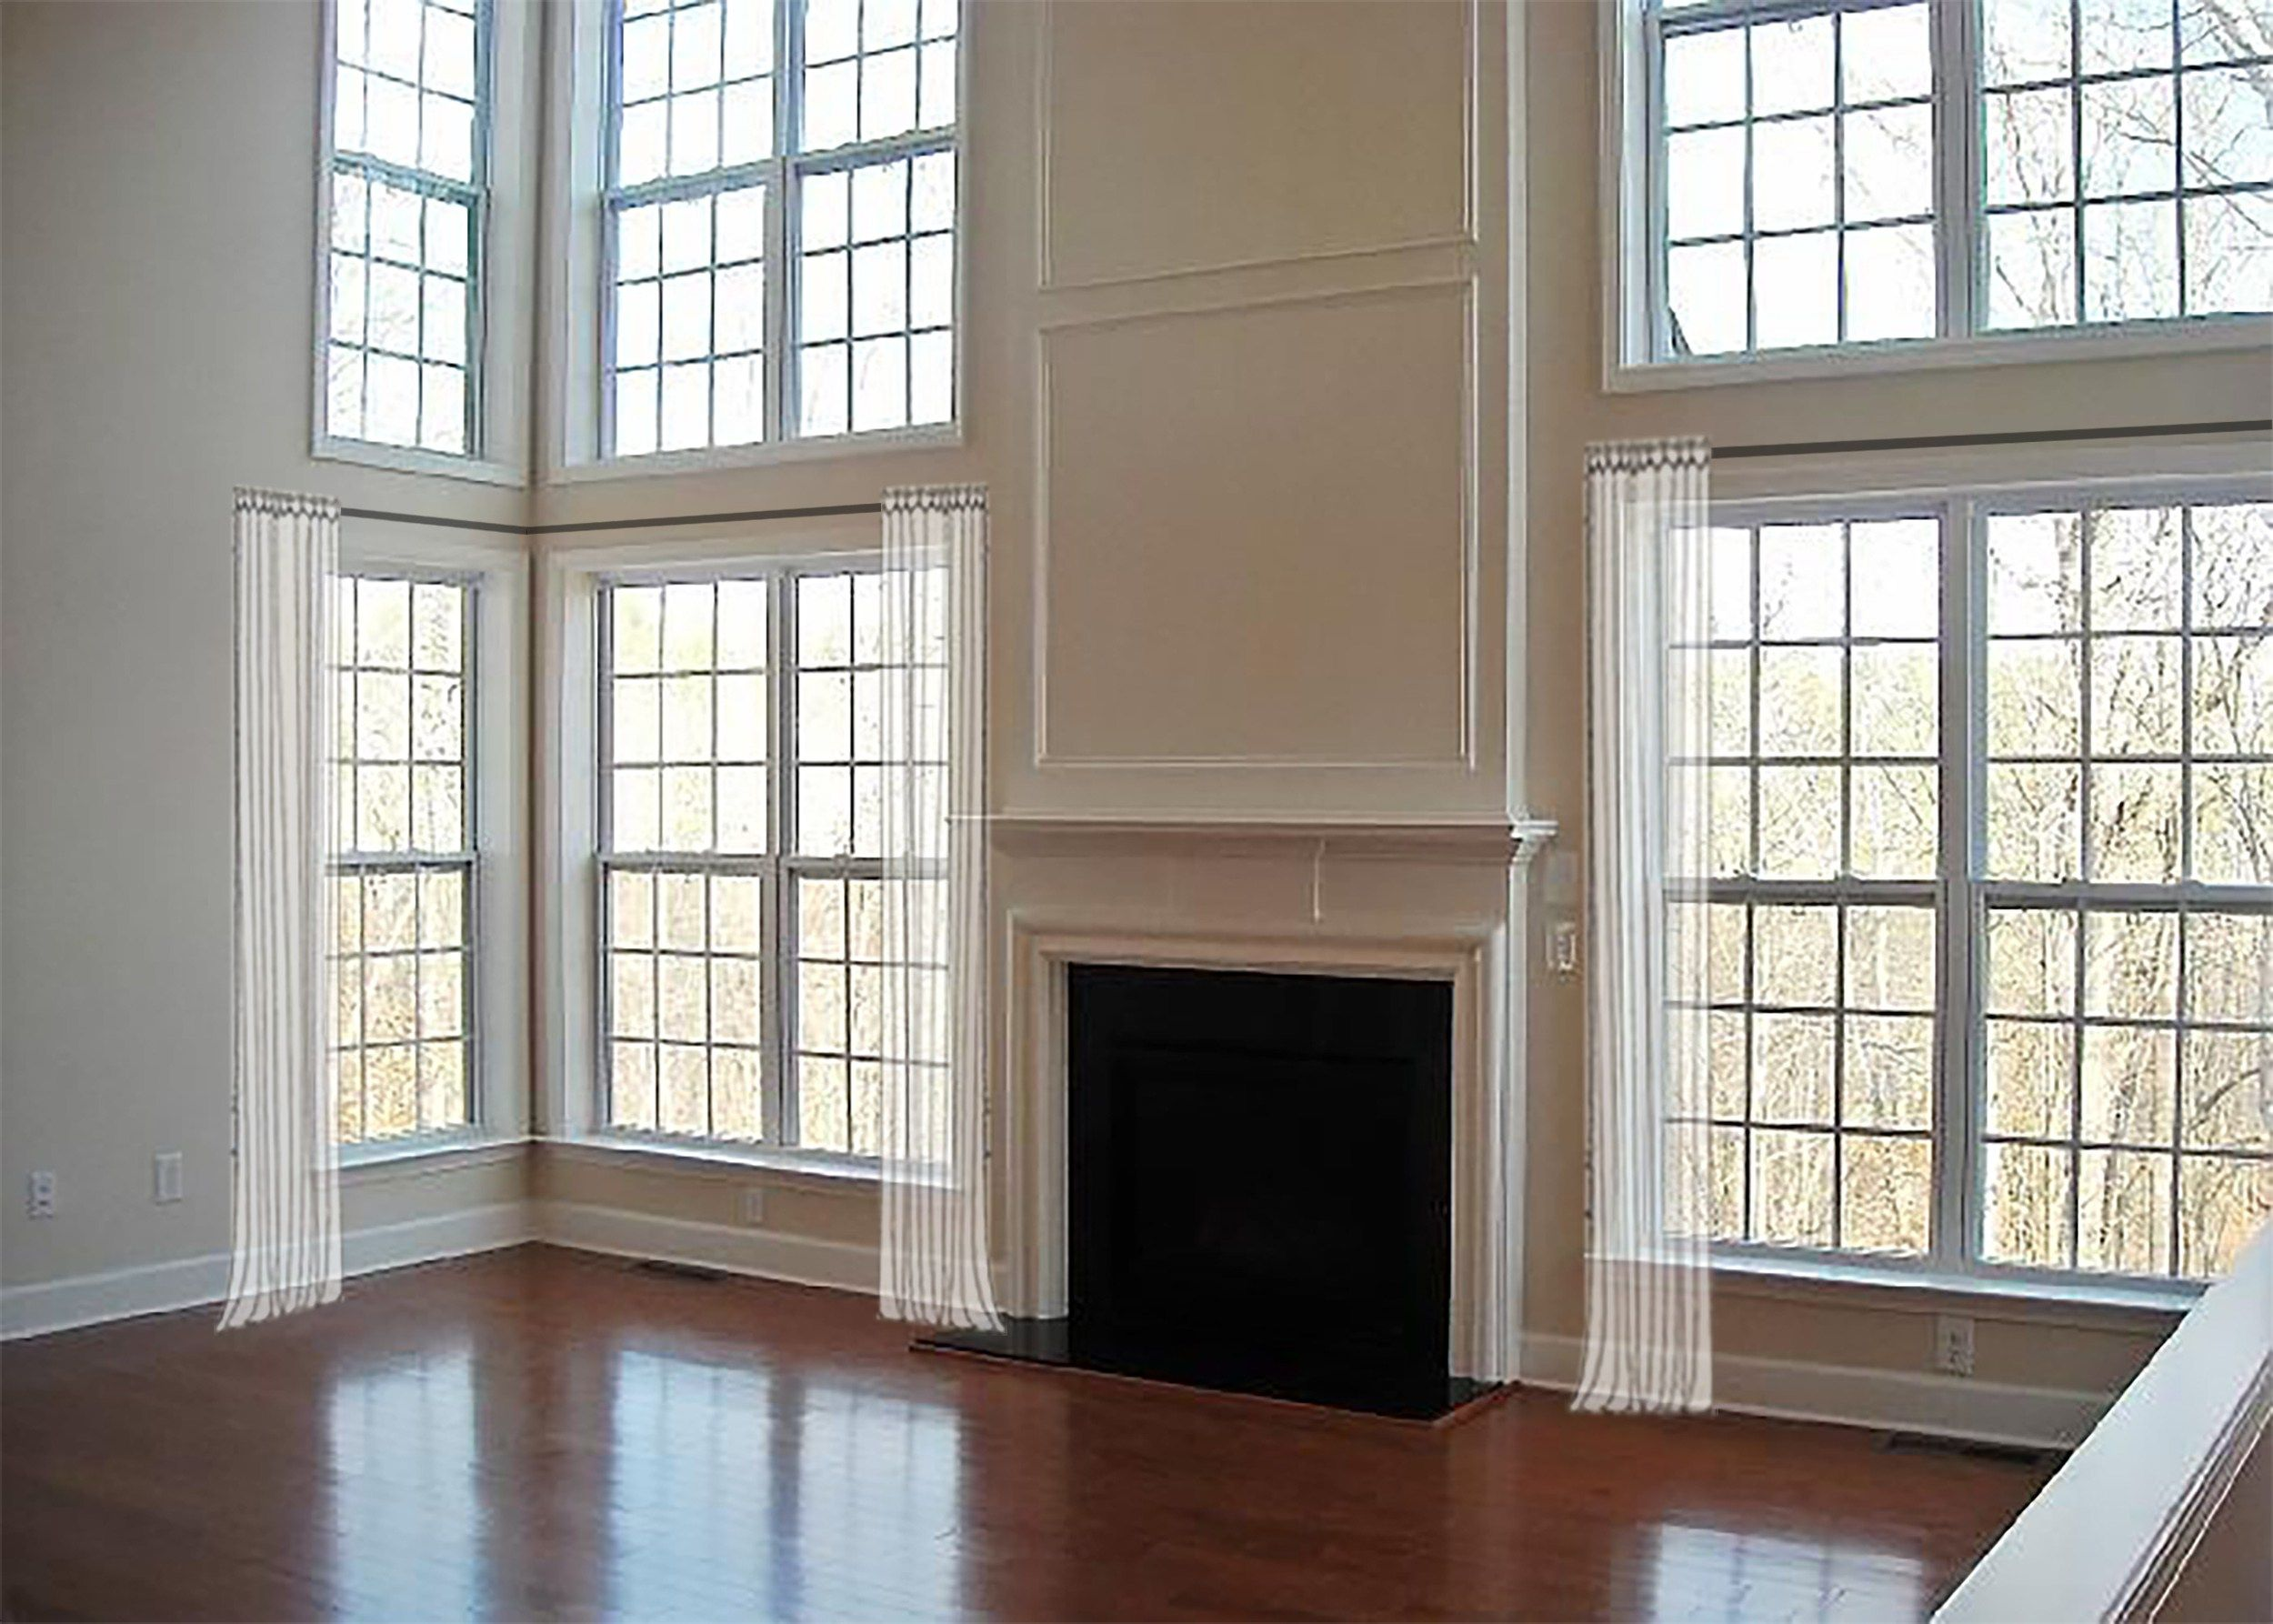 Window coverings for 2 story windows  how to dress awkward windows  where to shop for readymade options